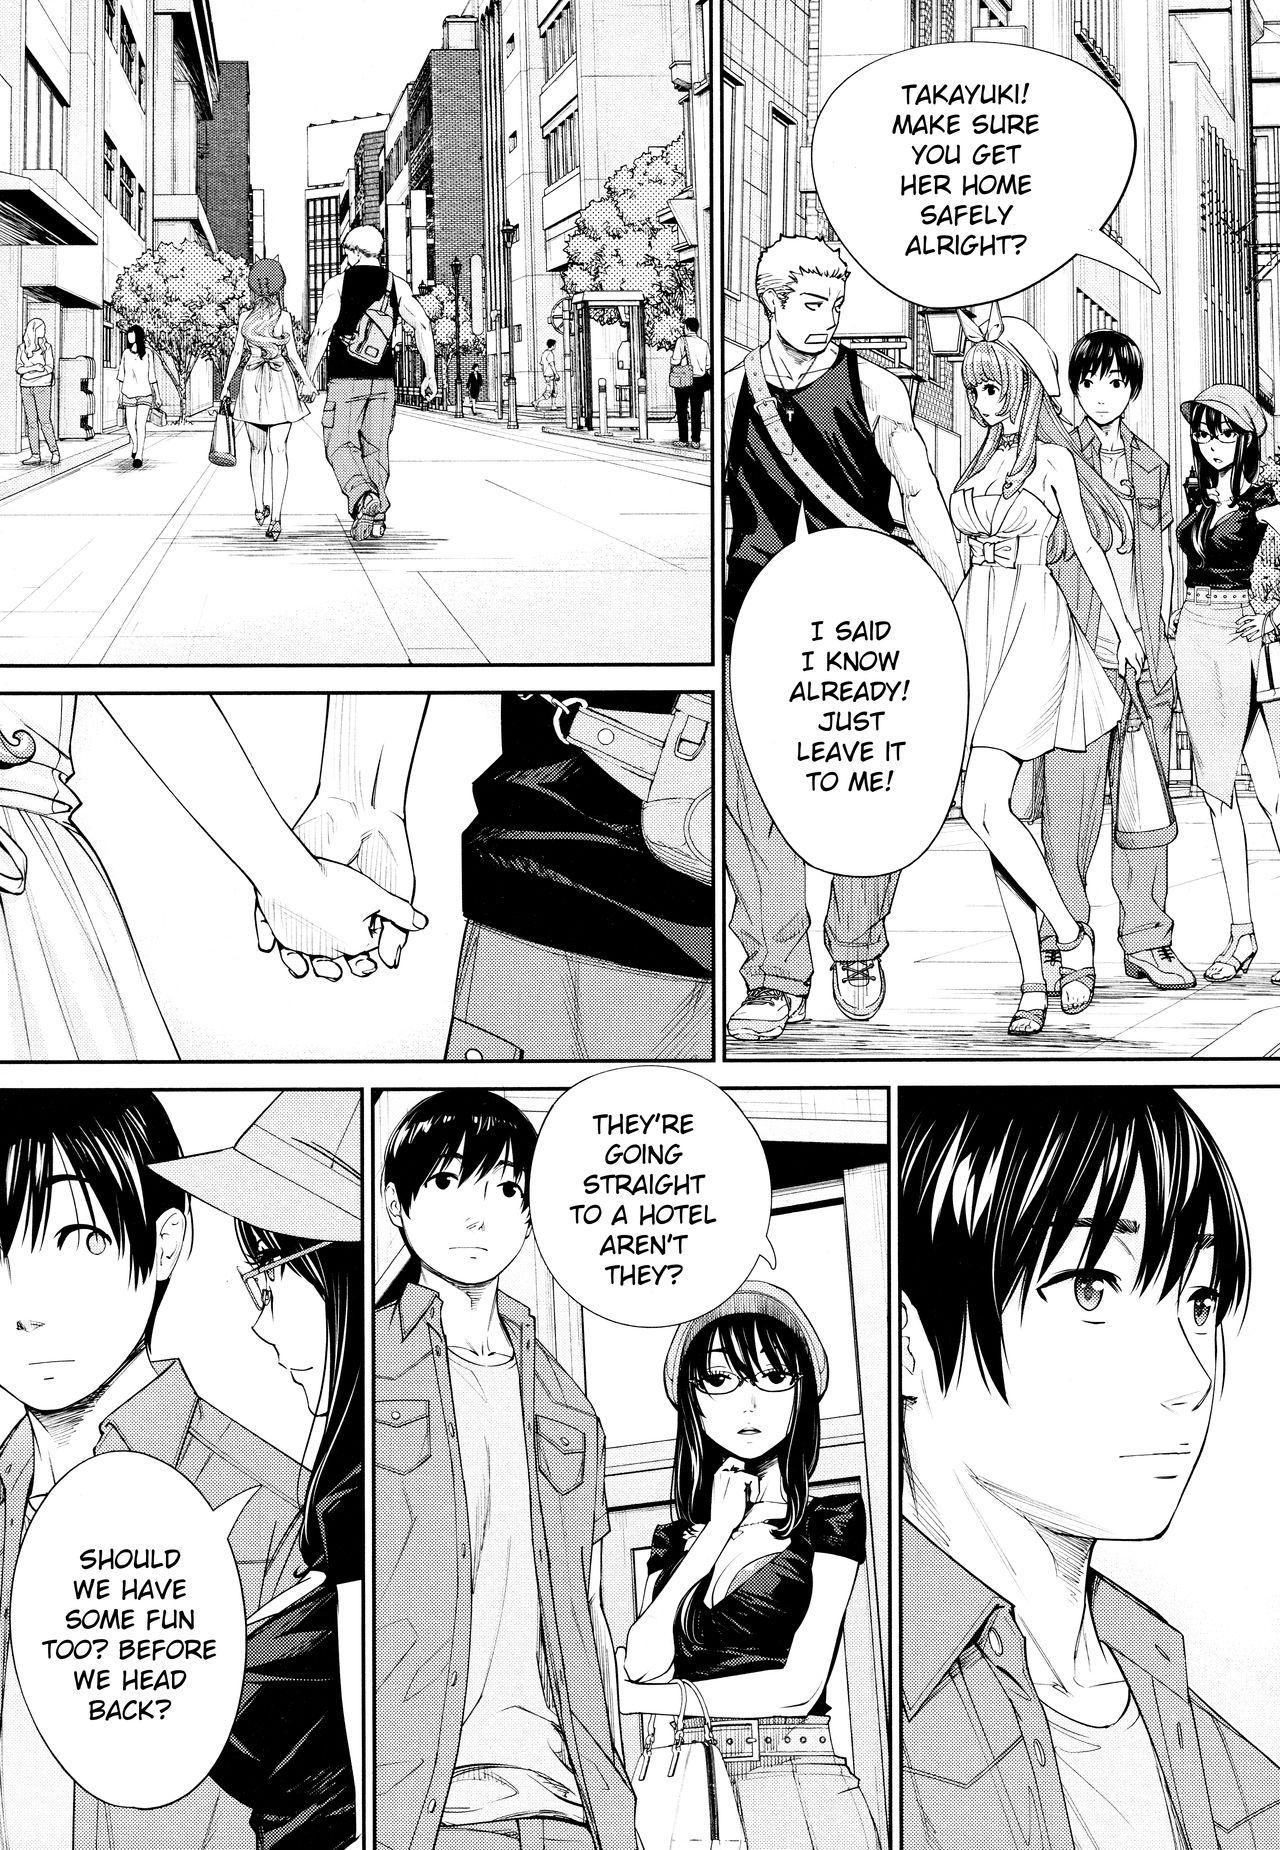 Chitose Final Chapter 38